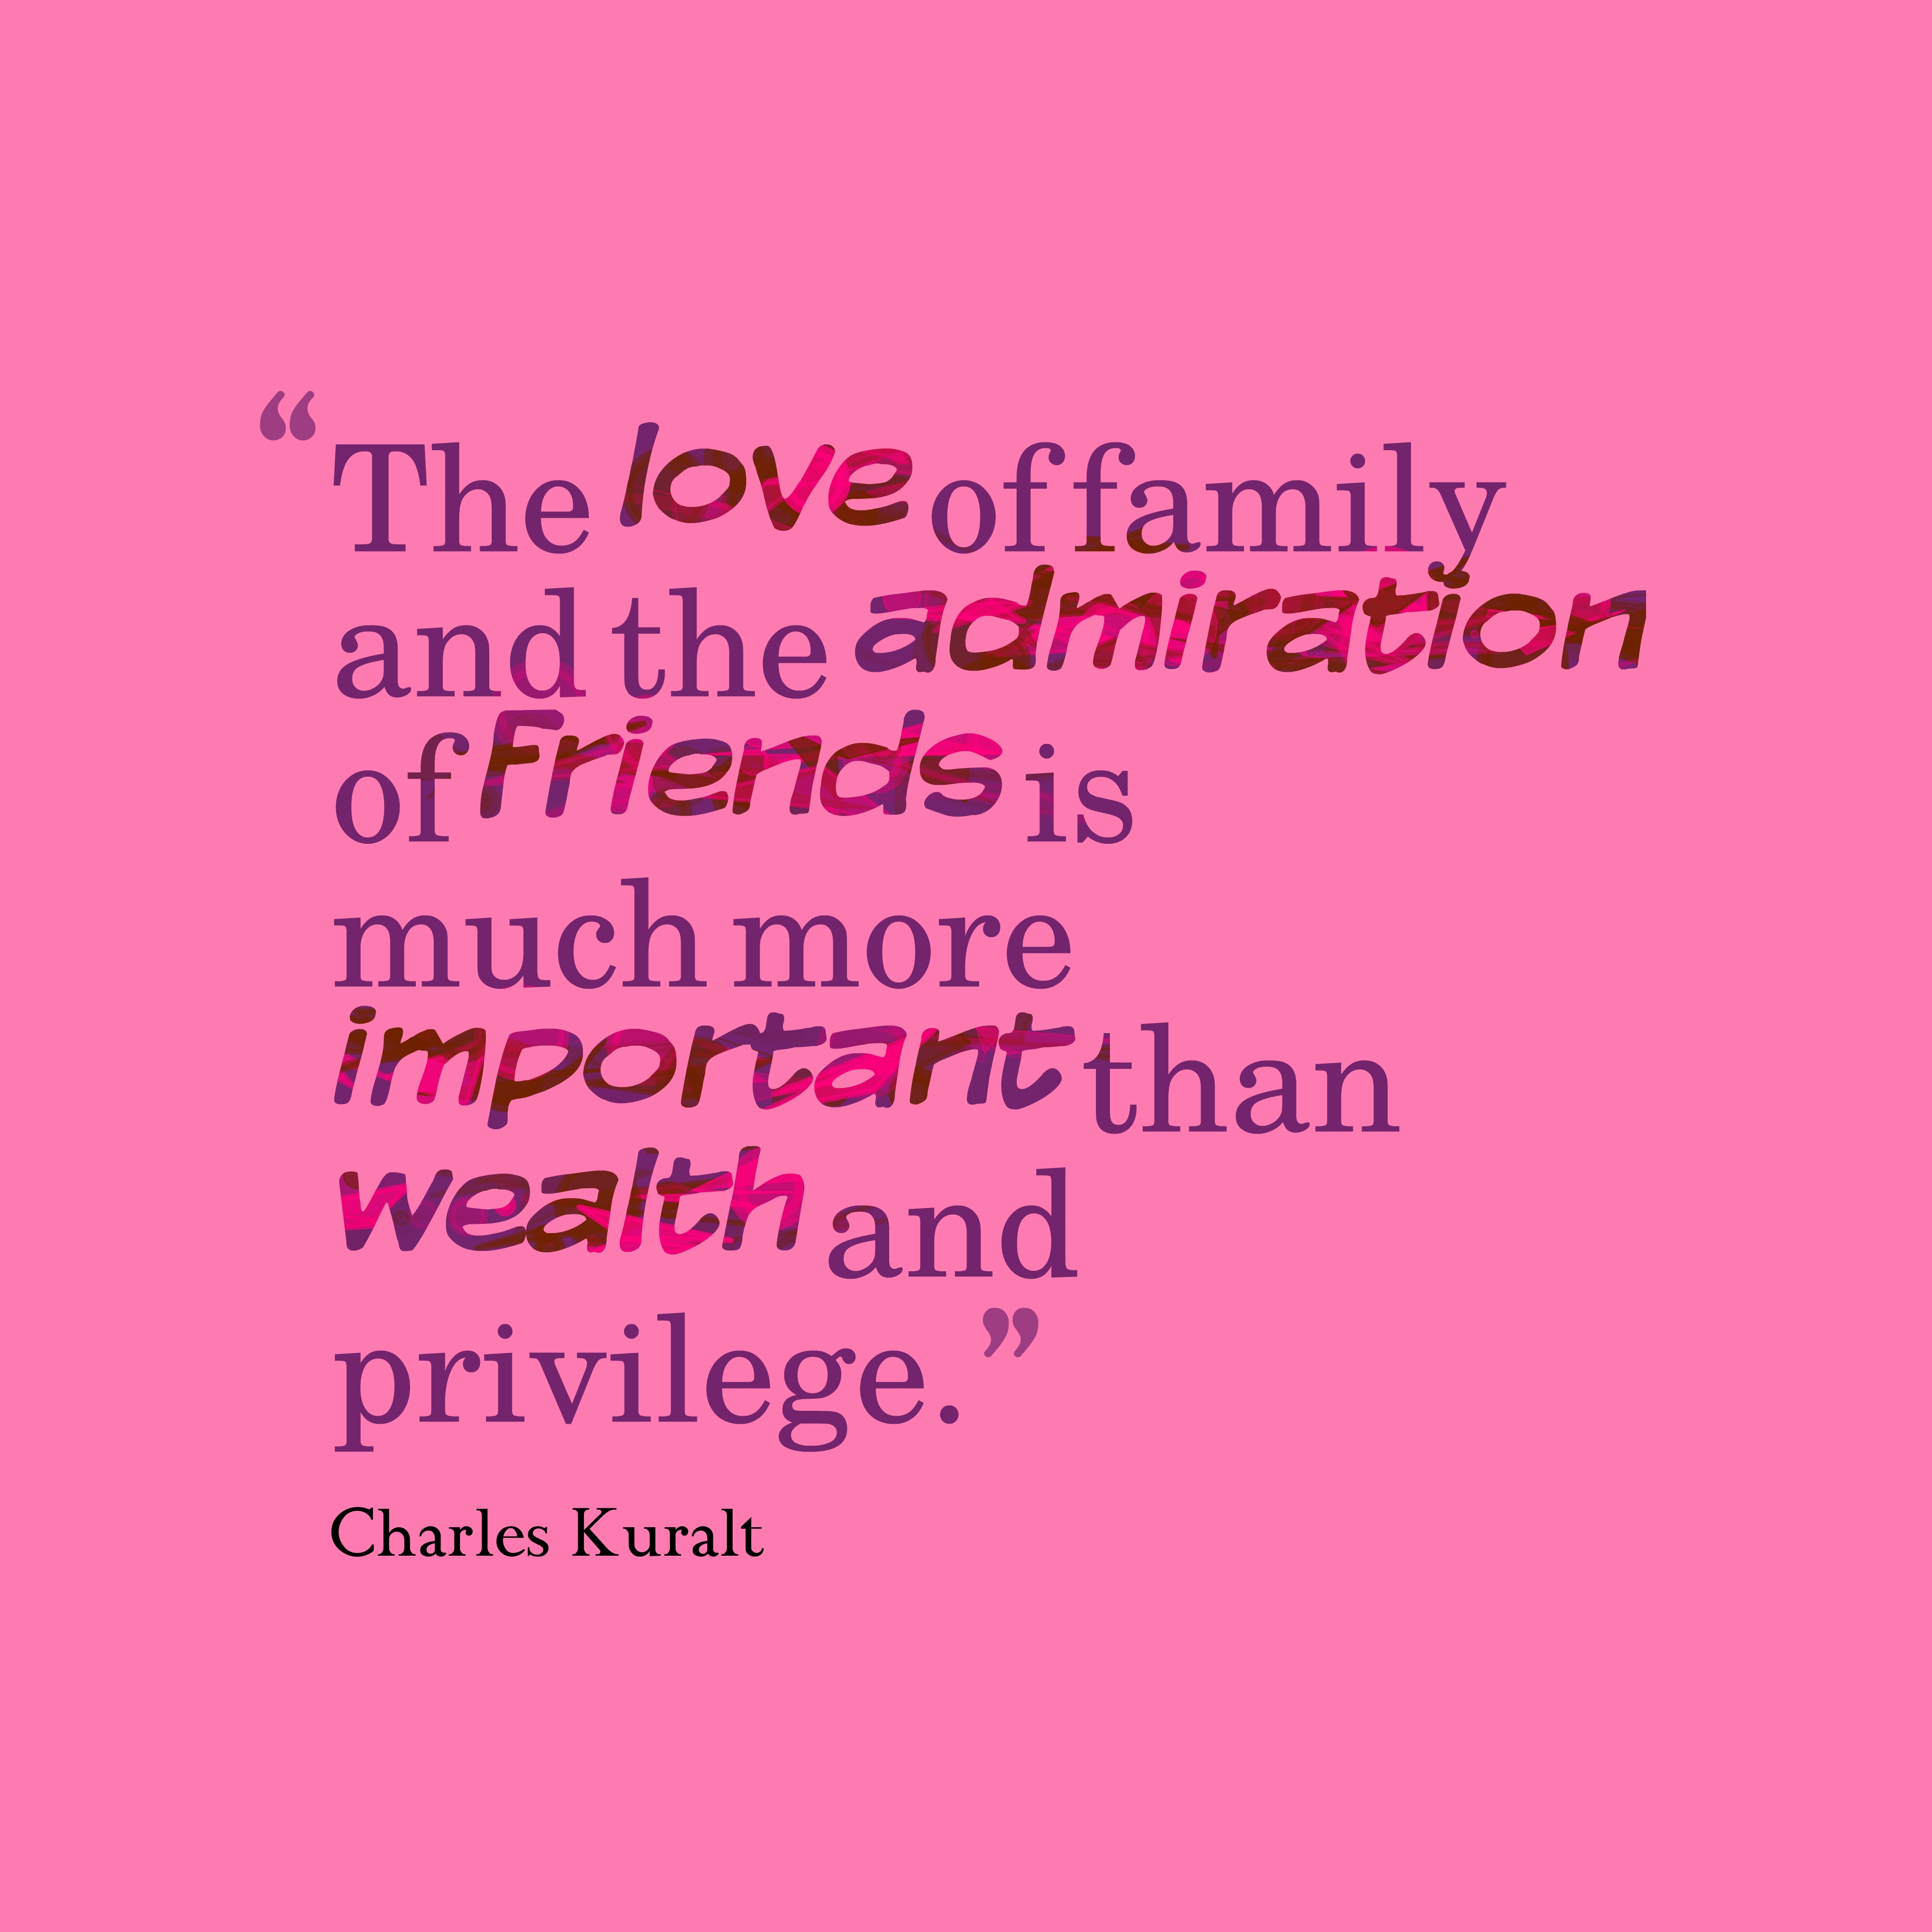 Quotes About Family Love 86 Best Family Quotes Images